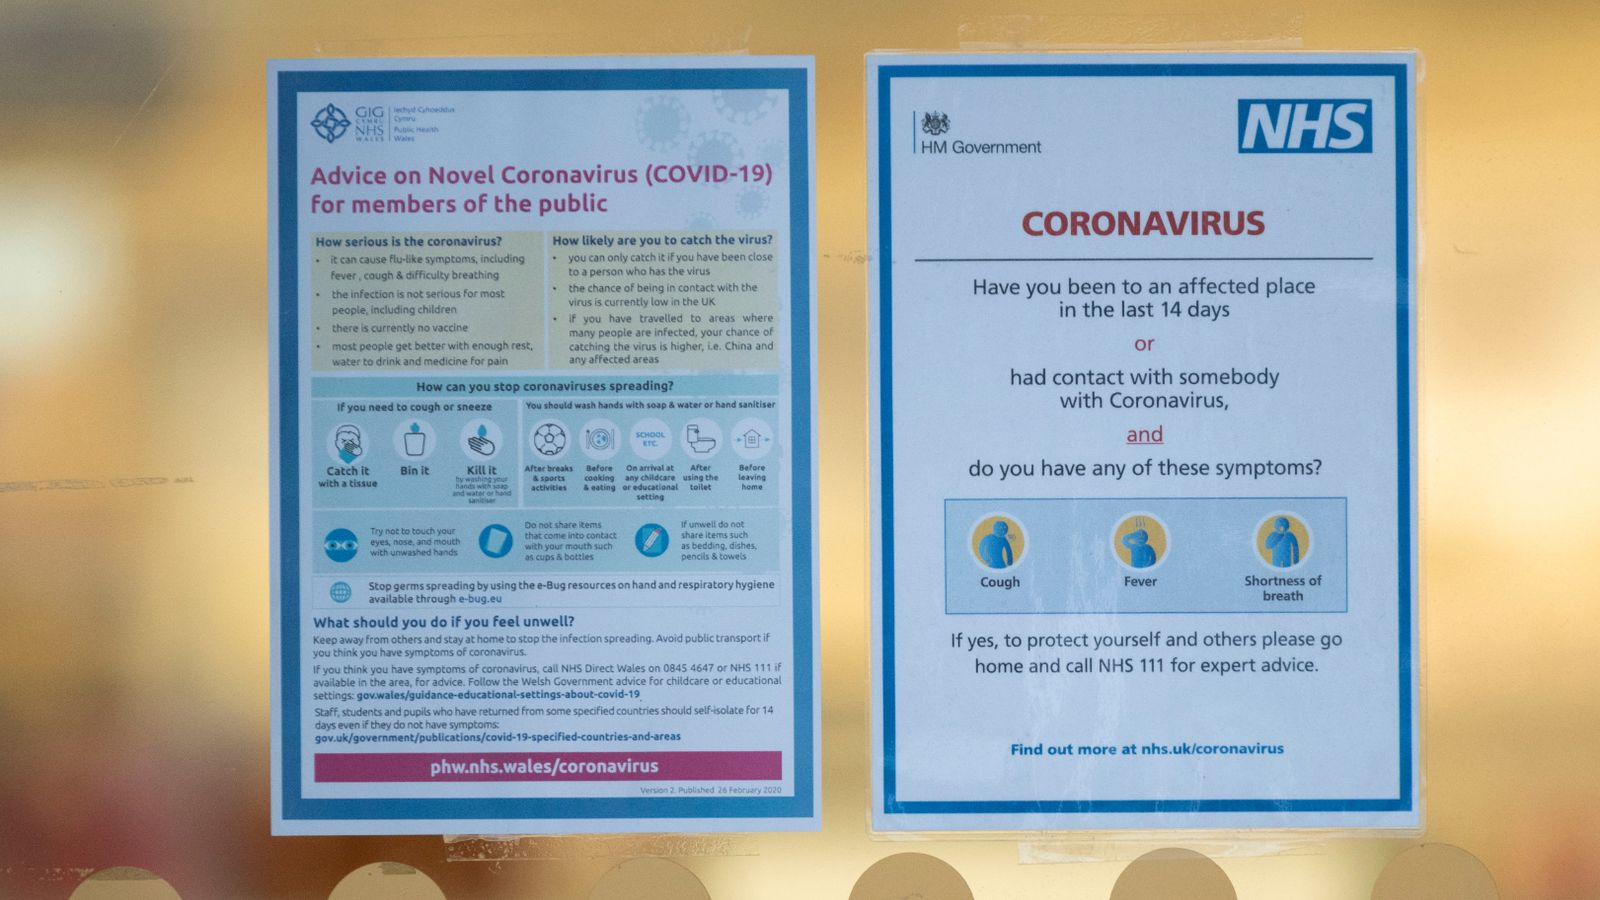 Coronavirus: Experts say new symptoms could be loss taste or smell